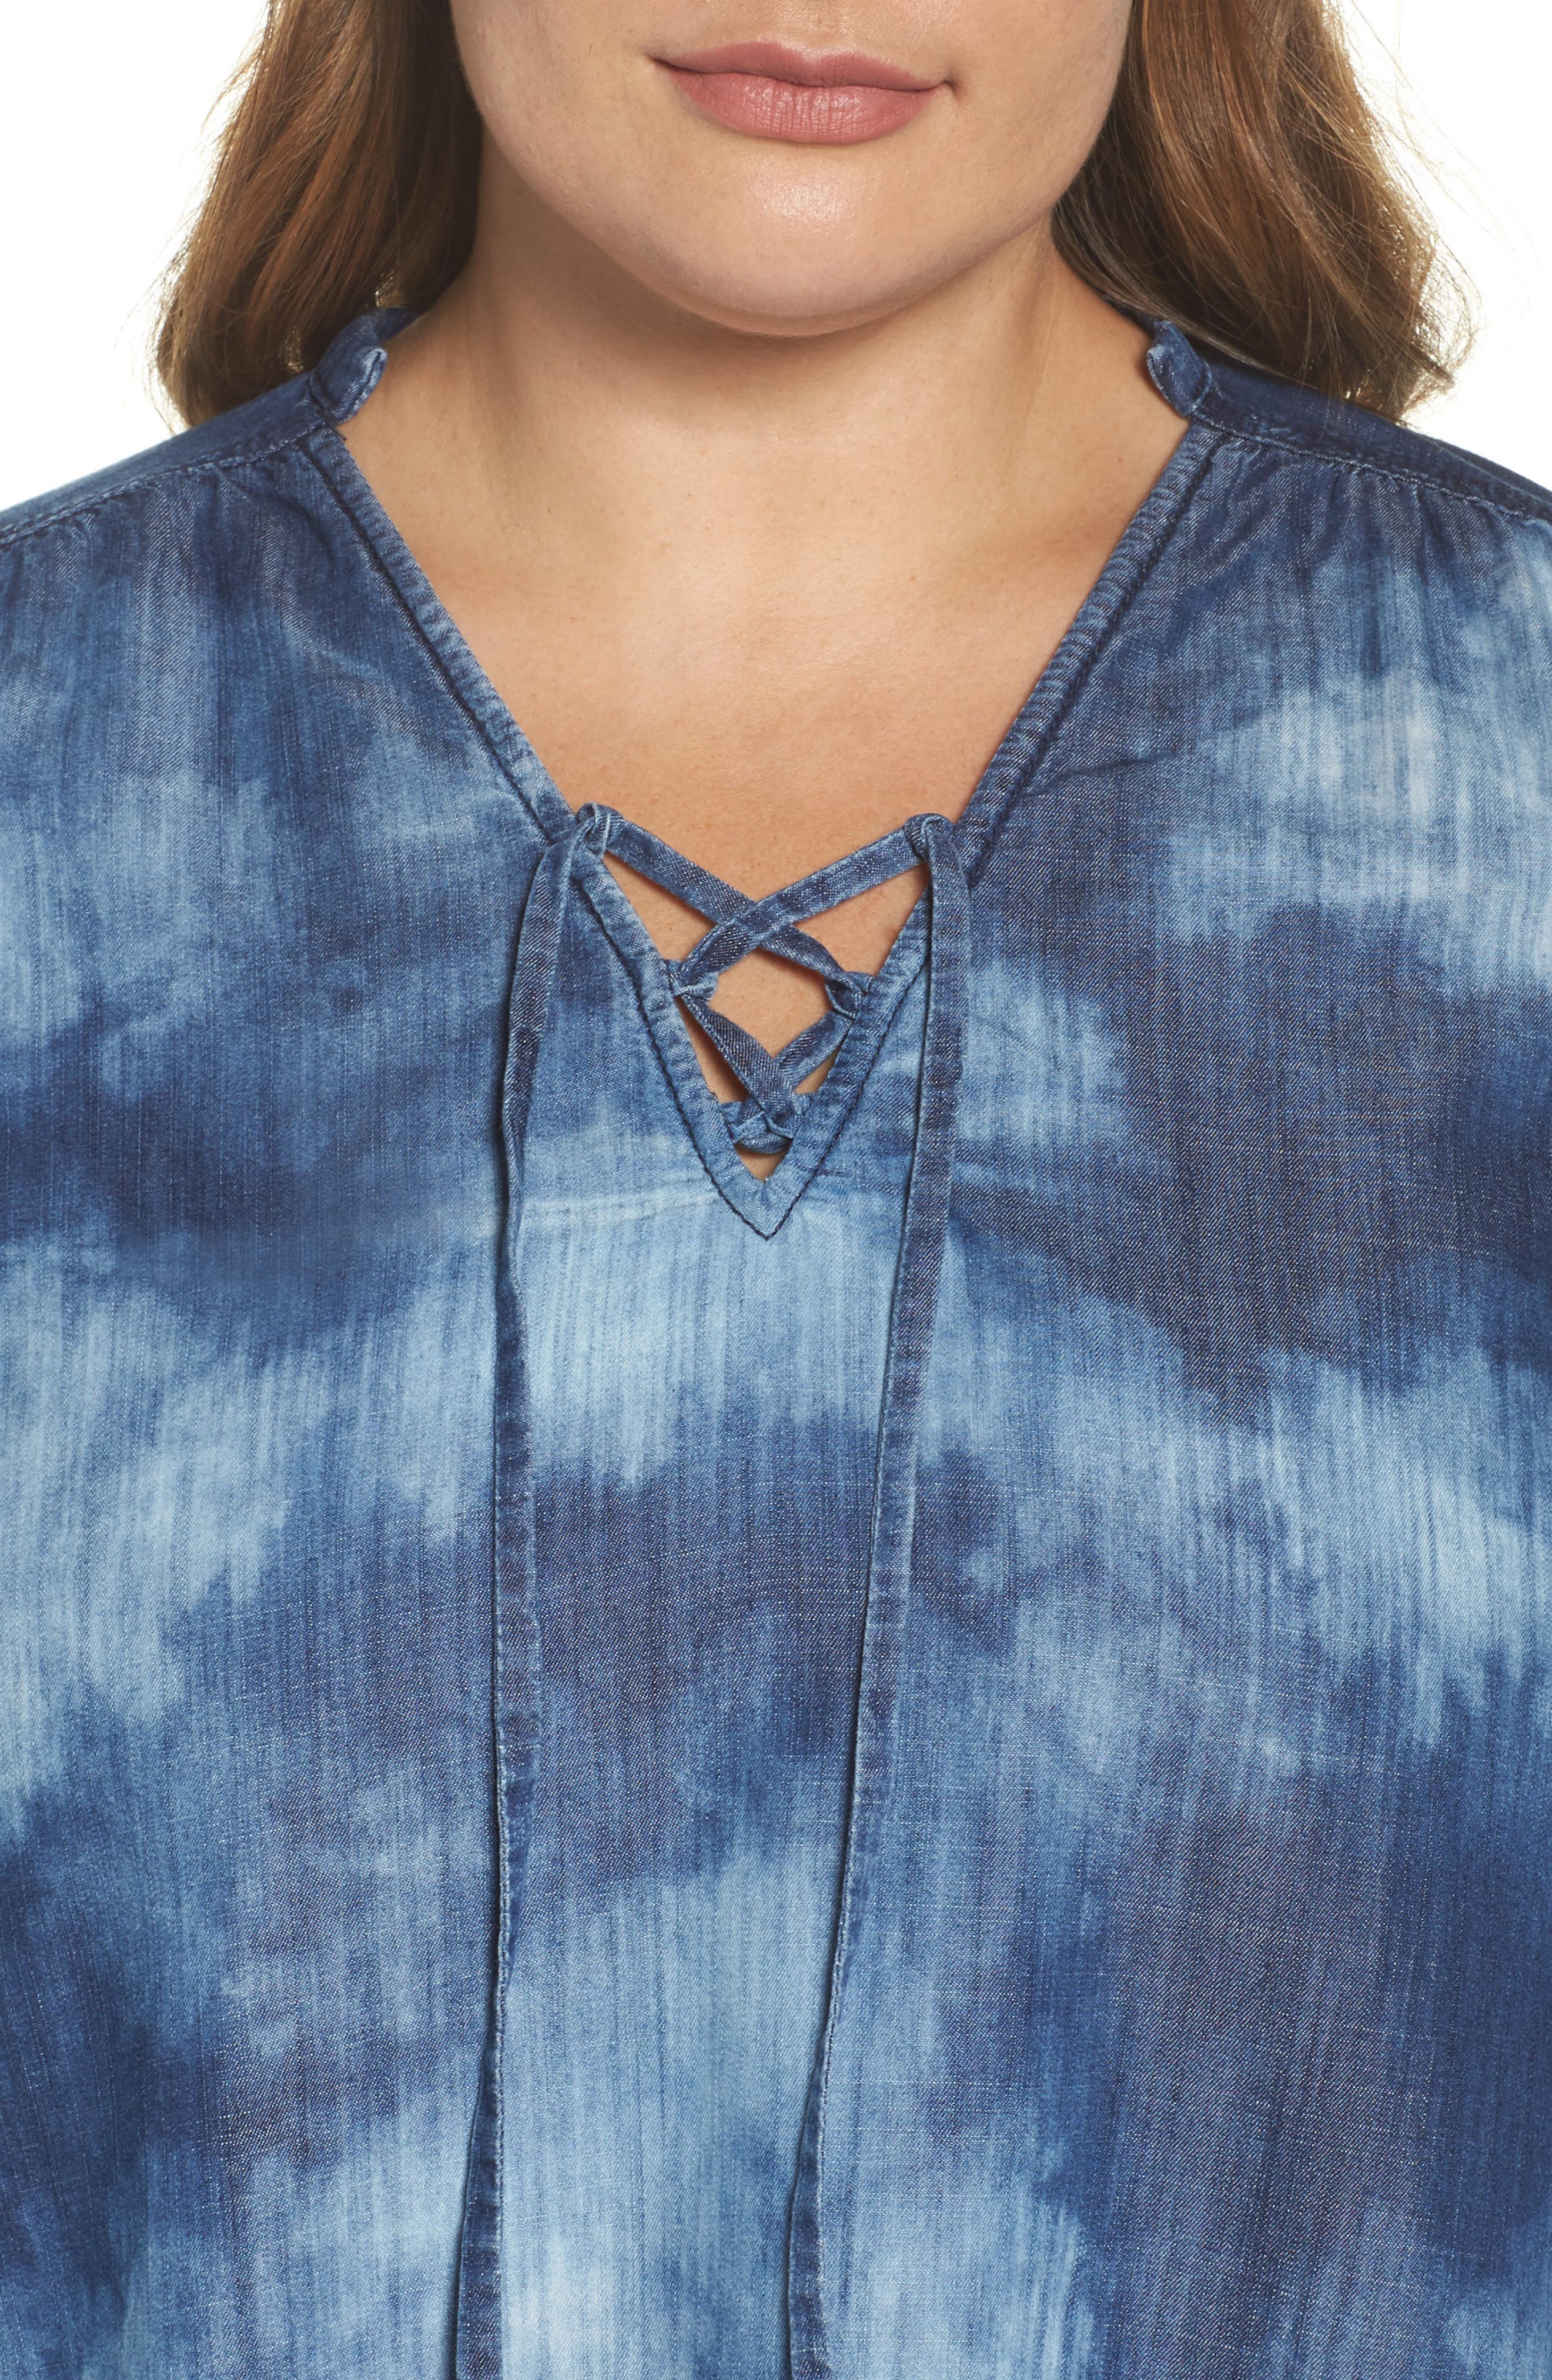 Bell Sleeve Top,                             Alternate thumbnail 4, color,                             422